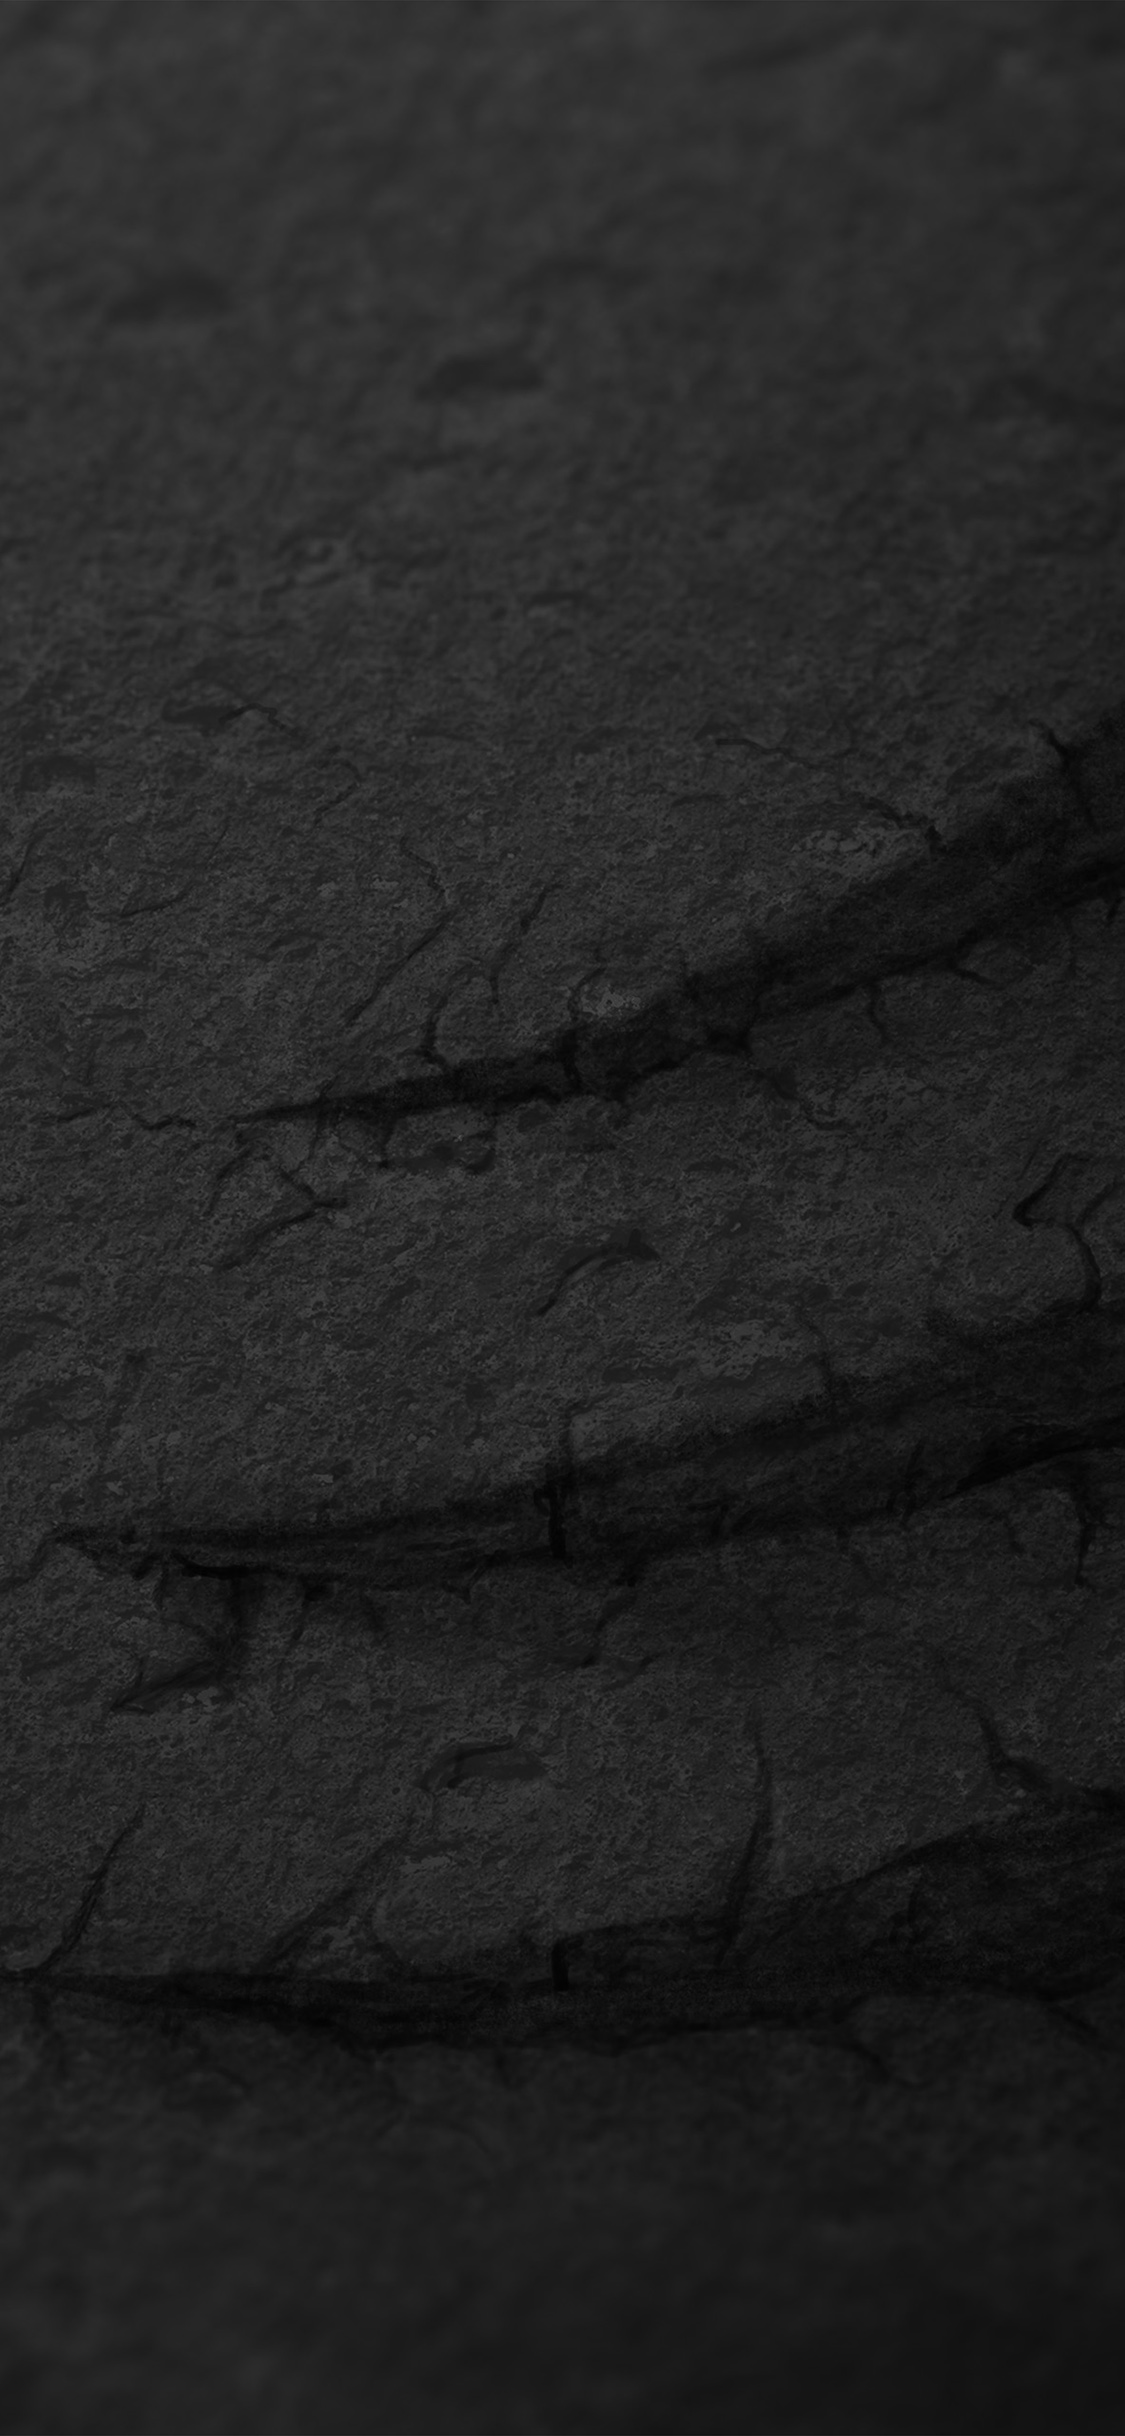 iPhoneXpapers.com-Apple-iPhone-wallpaper-vu28-rock-dark-bw-pattern-texture